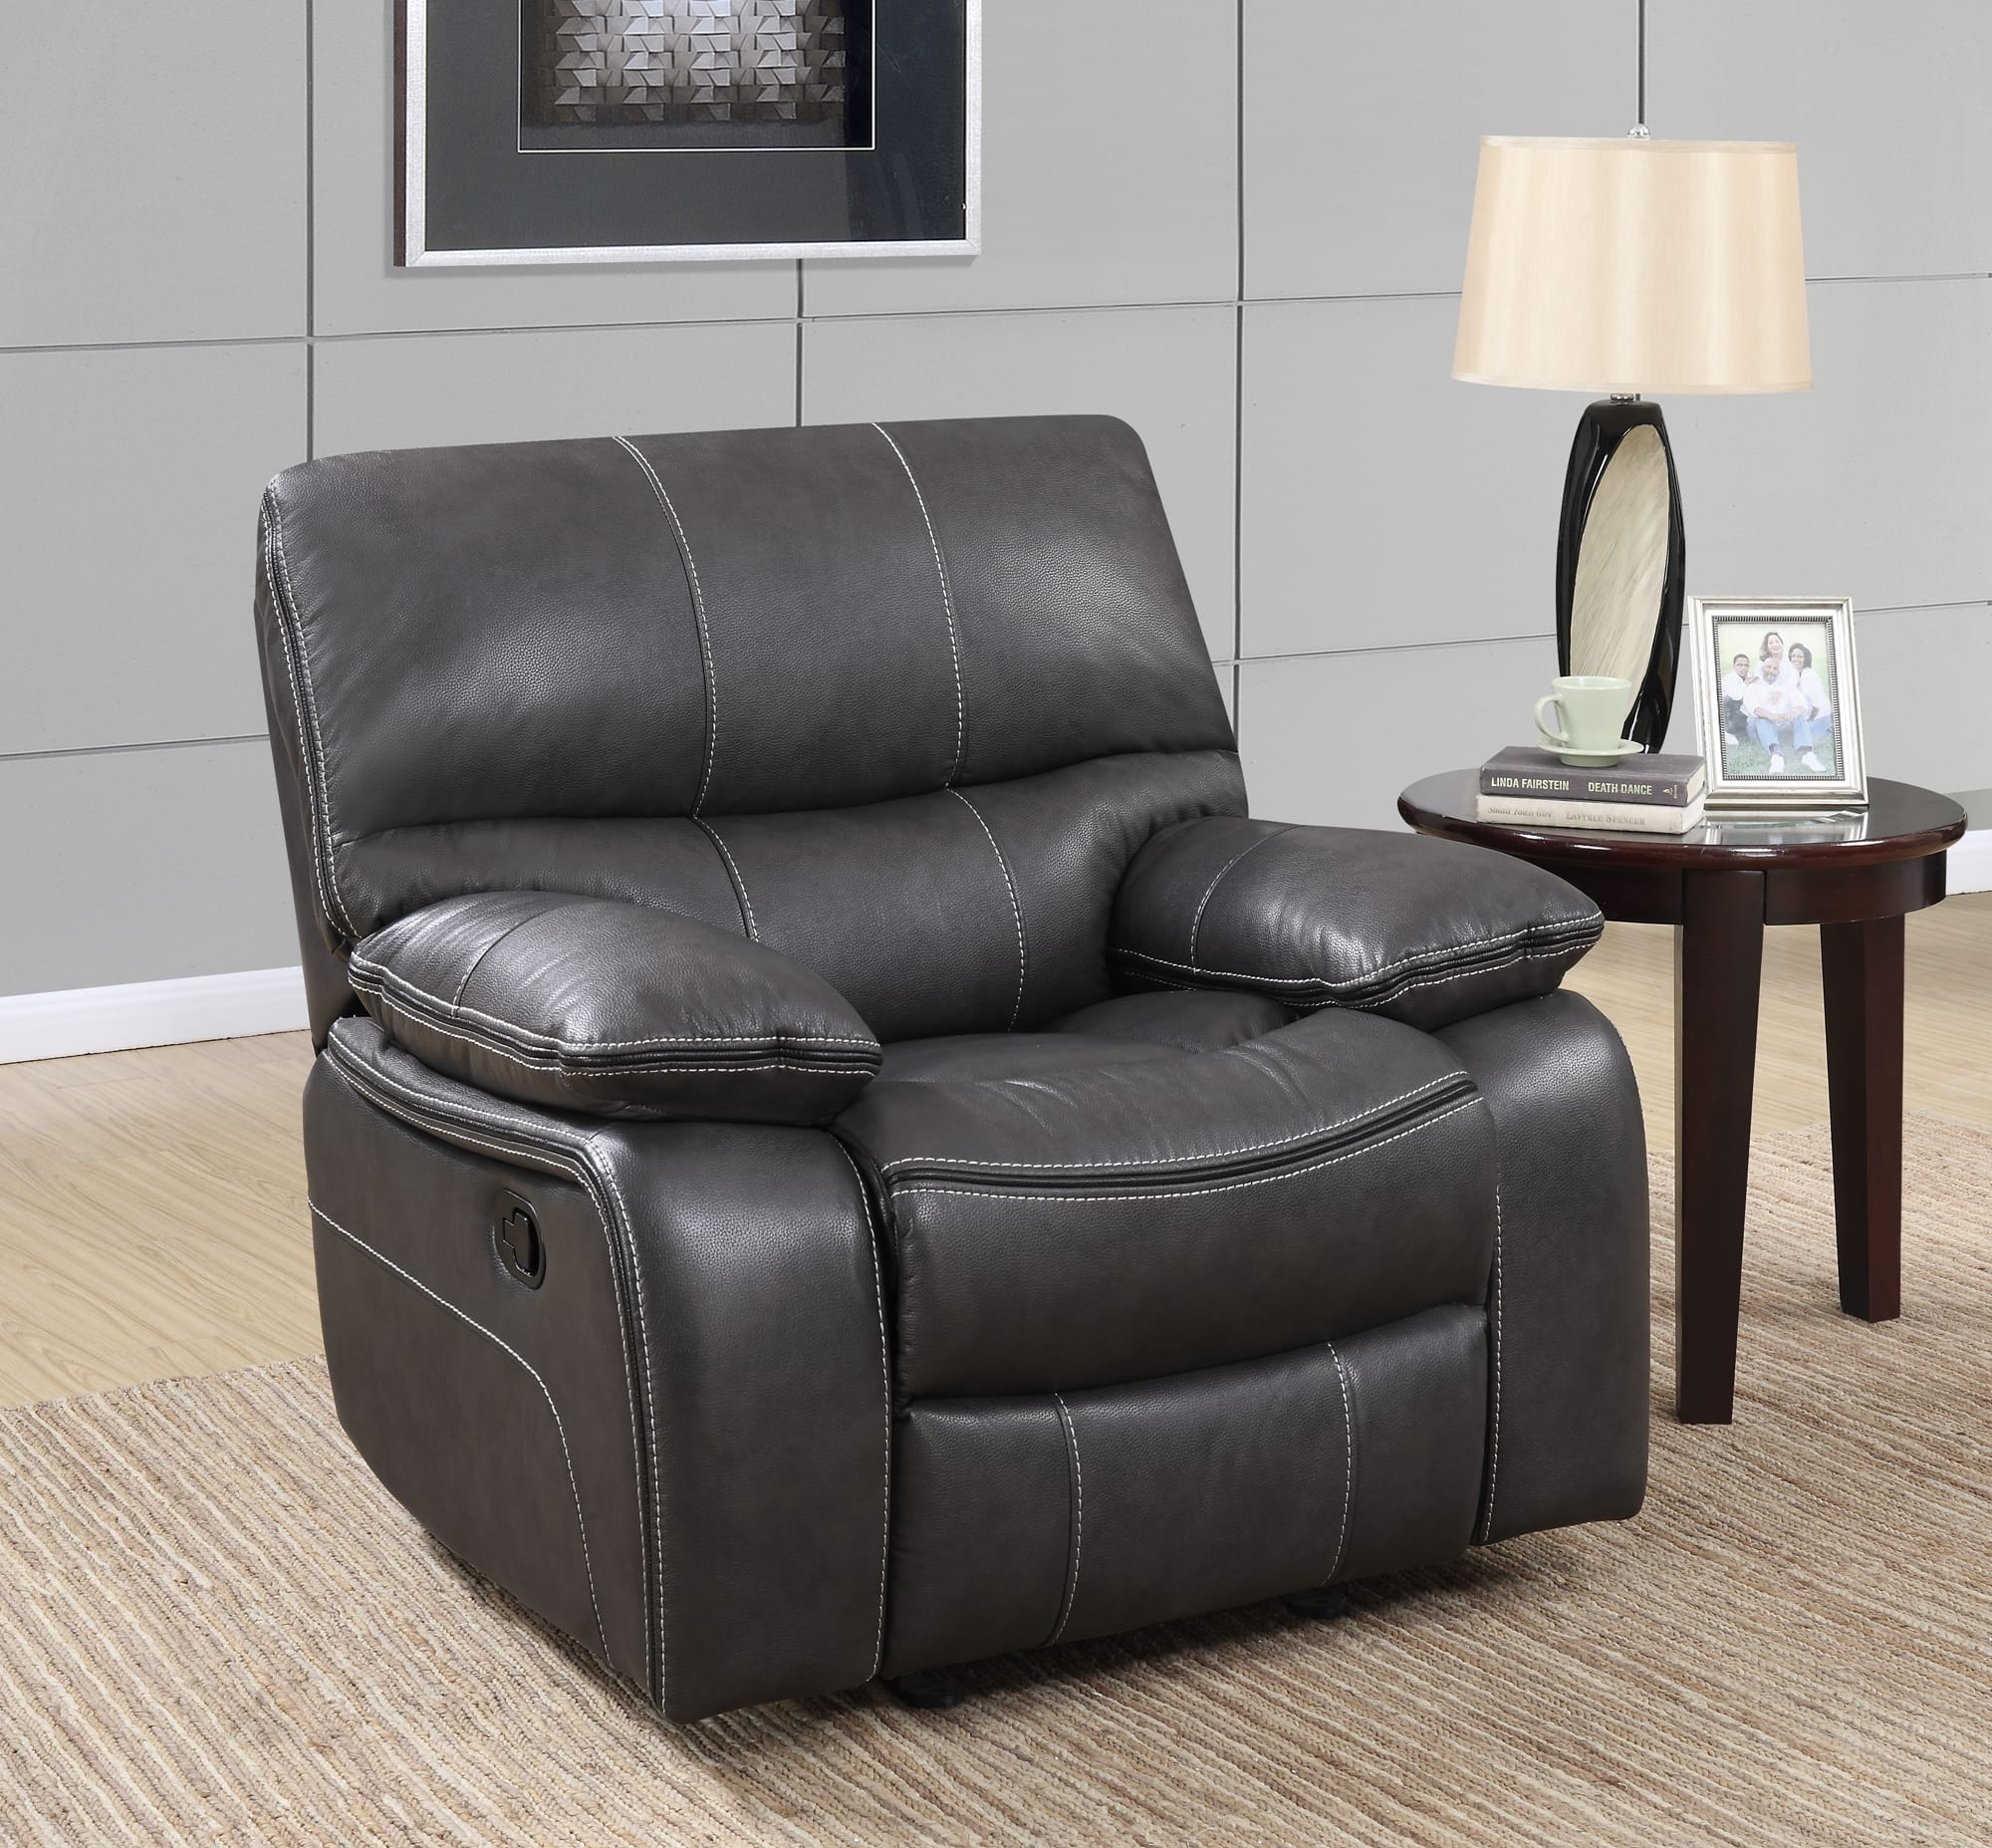 Gray Recliner Chair U0040 Grey Black Leather Glider Reclining Chair By Global